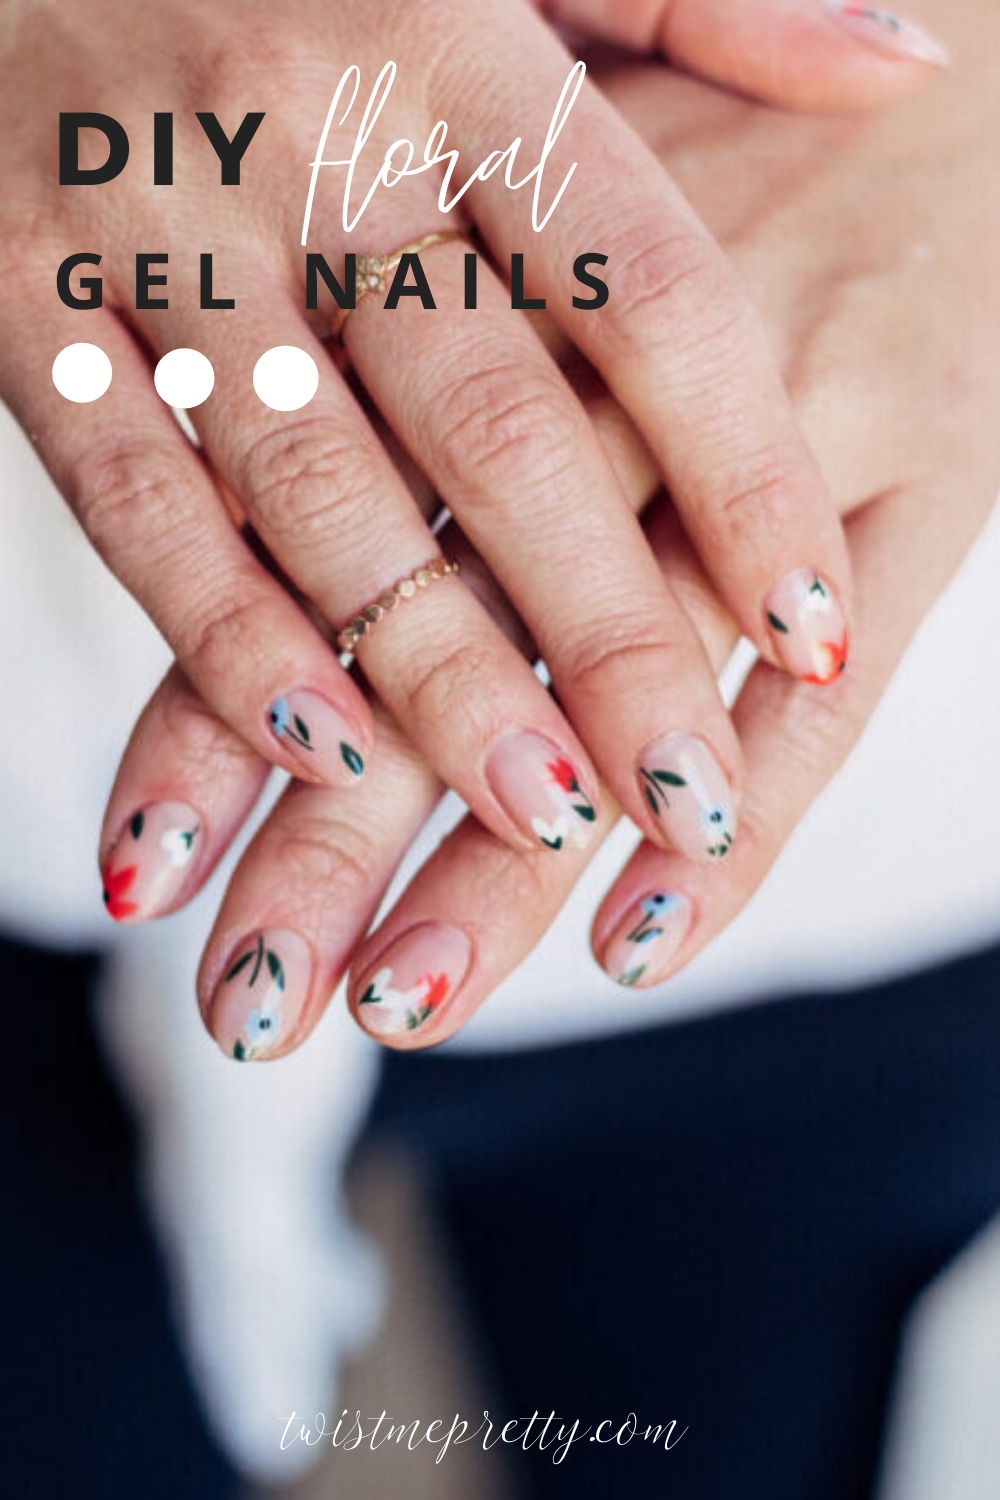 Diy tutorial for gel nails that you can at home! Love these gorgeous floral designs for every season.